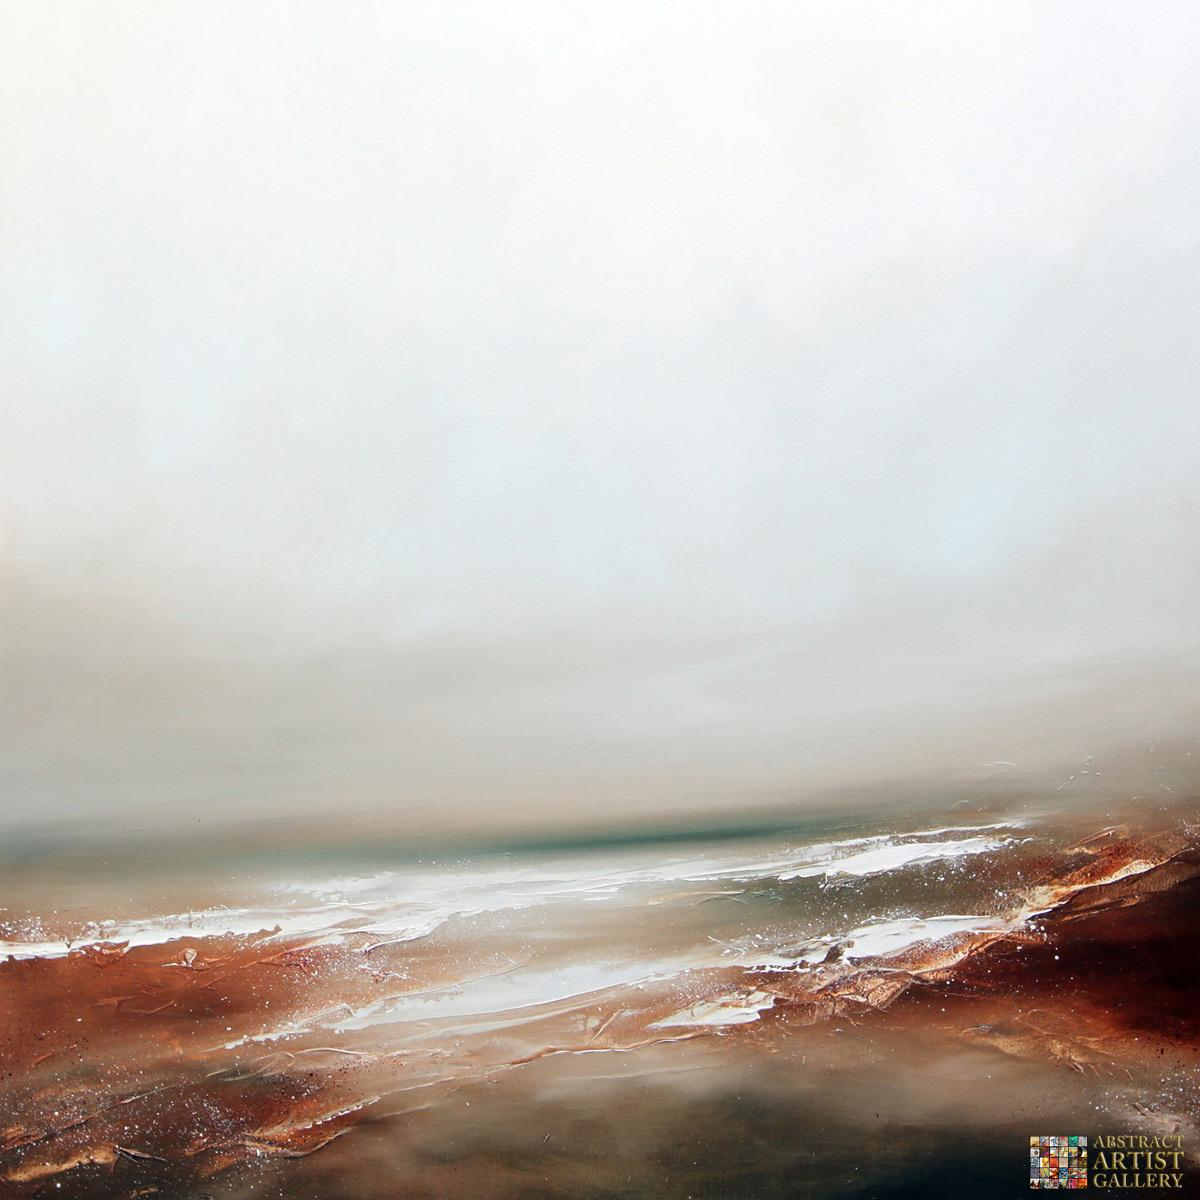 Abstract Art by Abstract Artist Paul Bennet